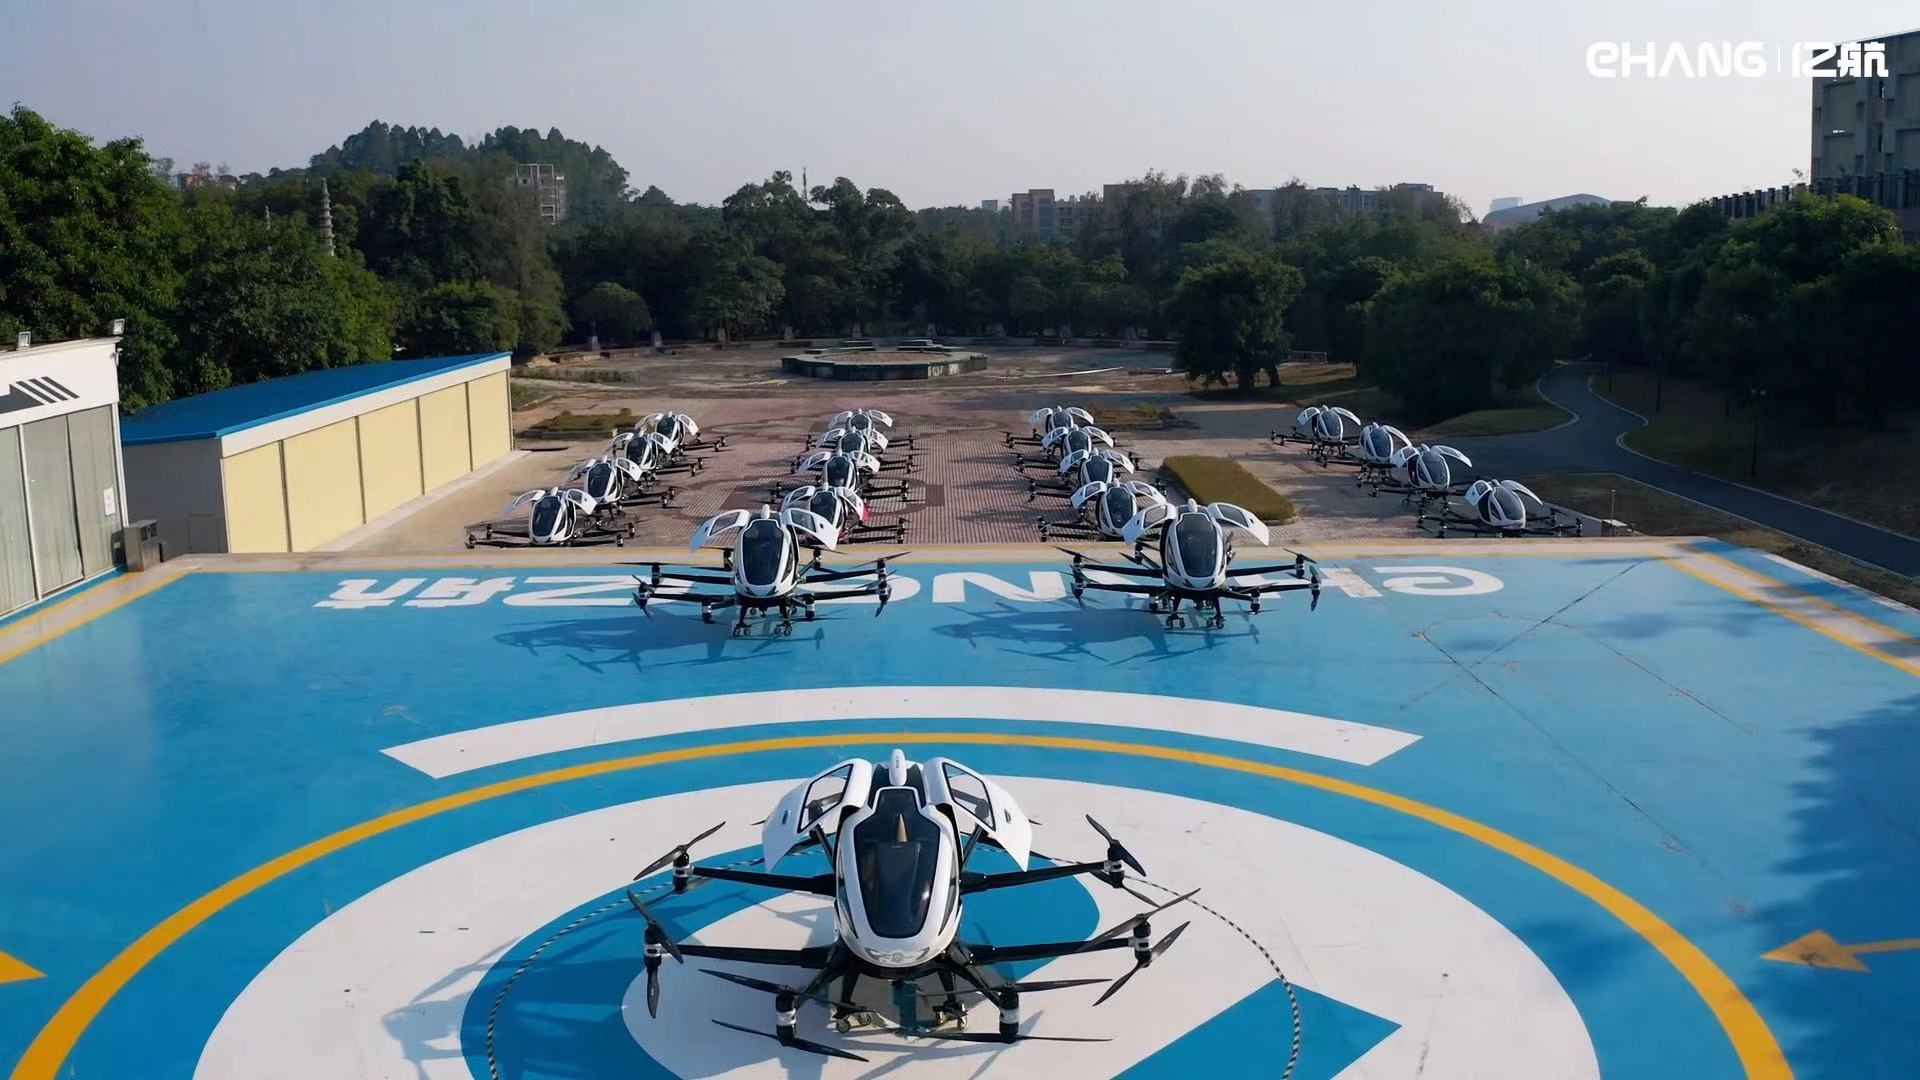 EHang Delivers Batch of EHang 216 Passenger-Grade Autonomous Aerial Vehicles